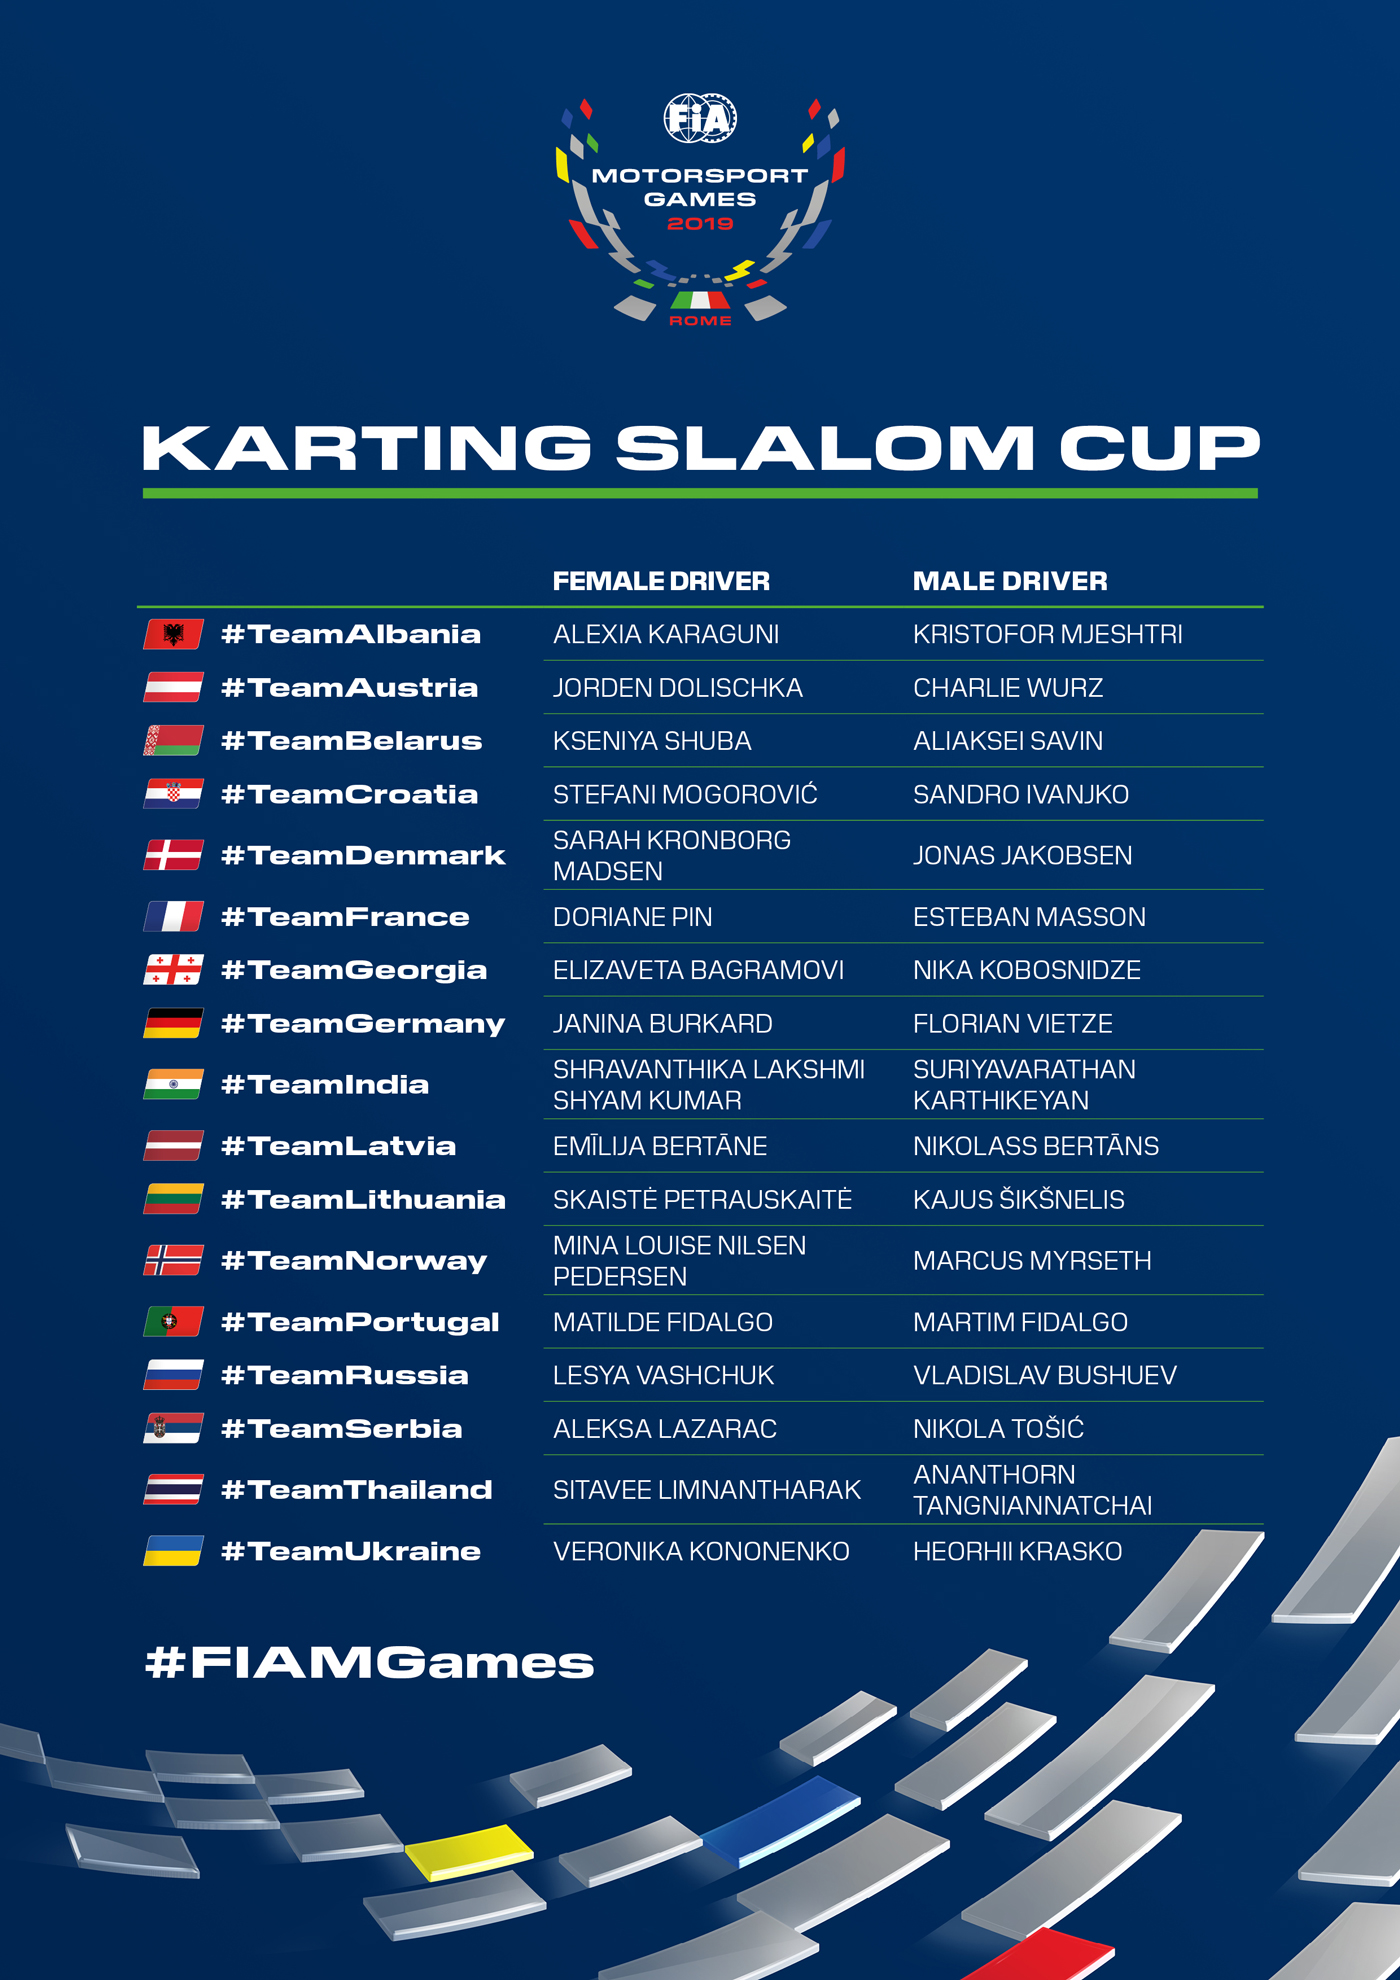 Fia karting slalom cup teams and drivers